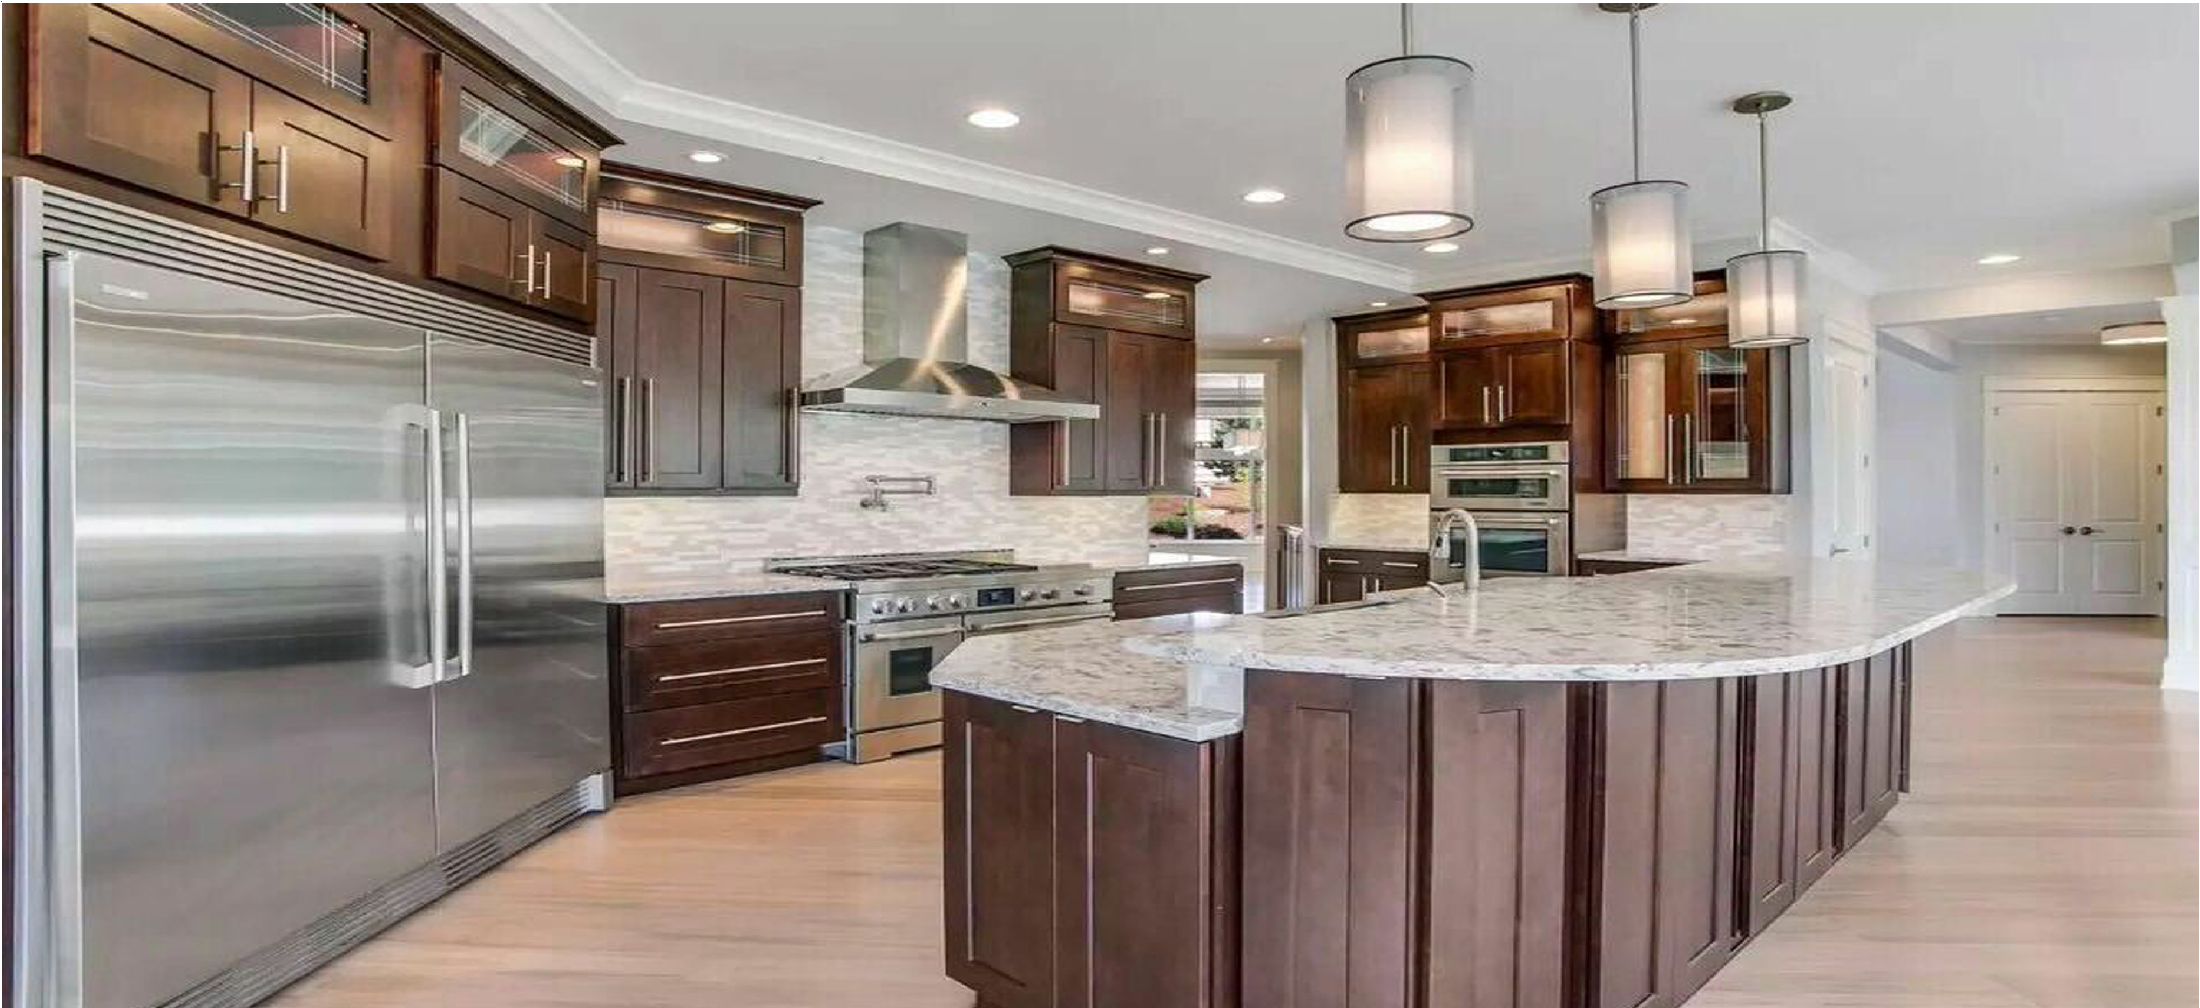 High Quality Cabinets & Granite Countertops | Lincoln, NE on Granite Countertops With Maple Cabinets  id=33252